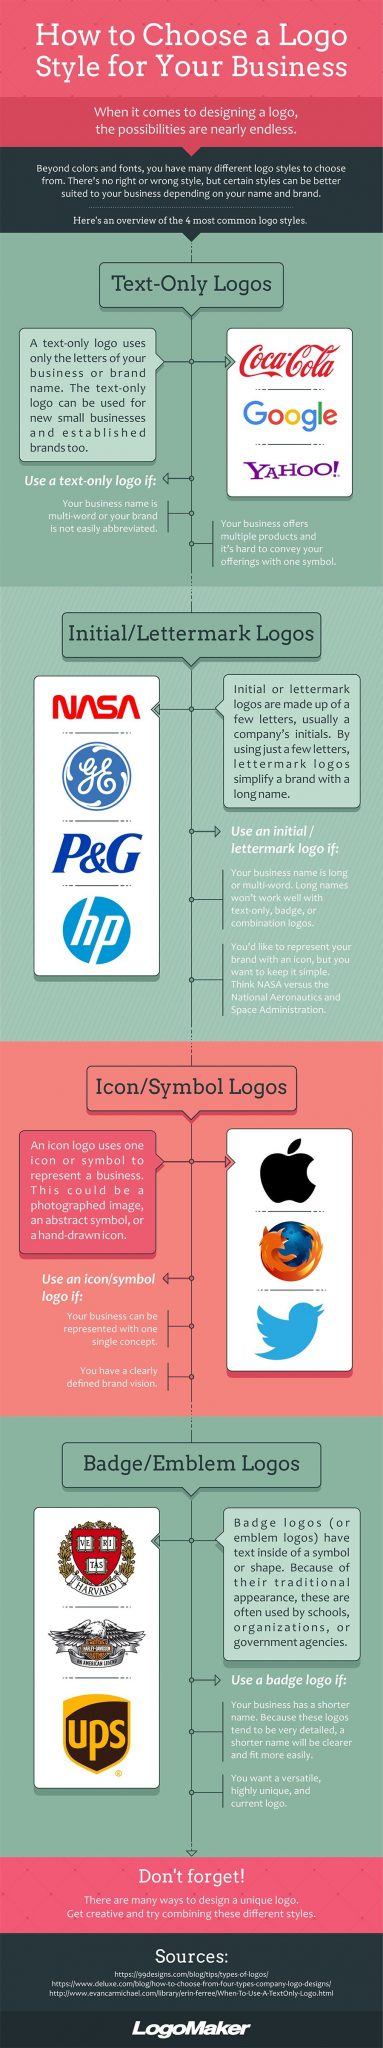 How-to-Choose-a-Logo-Style-for-Your-Business